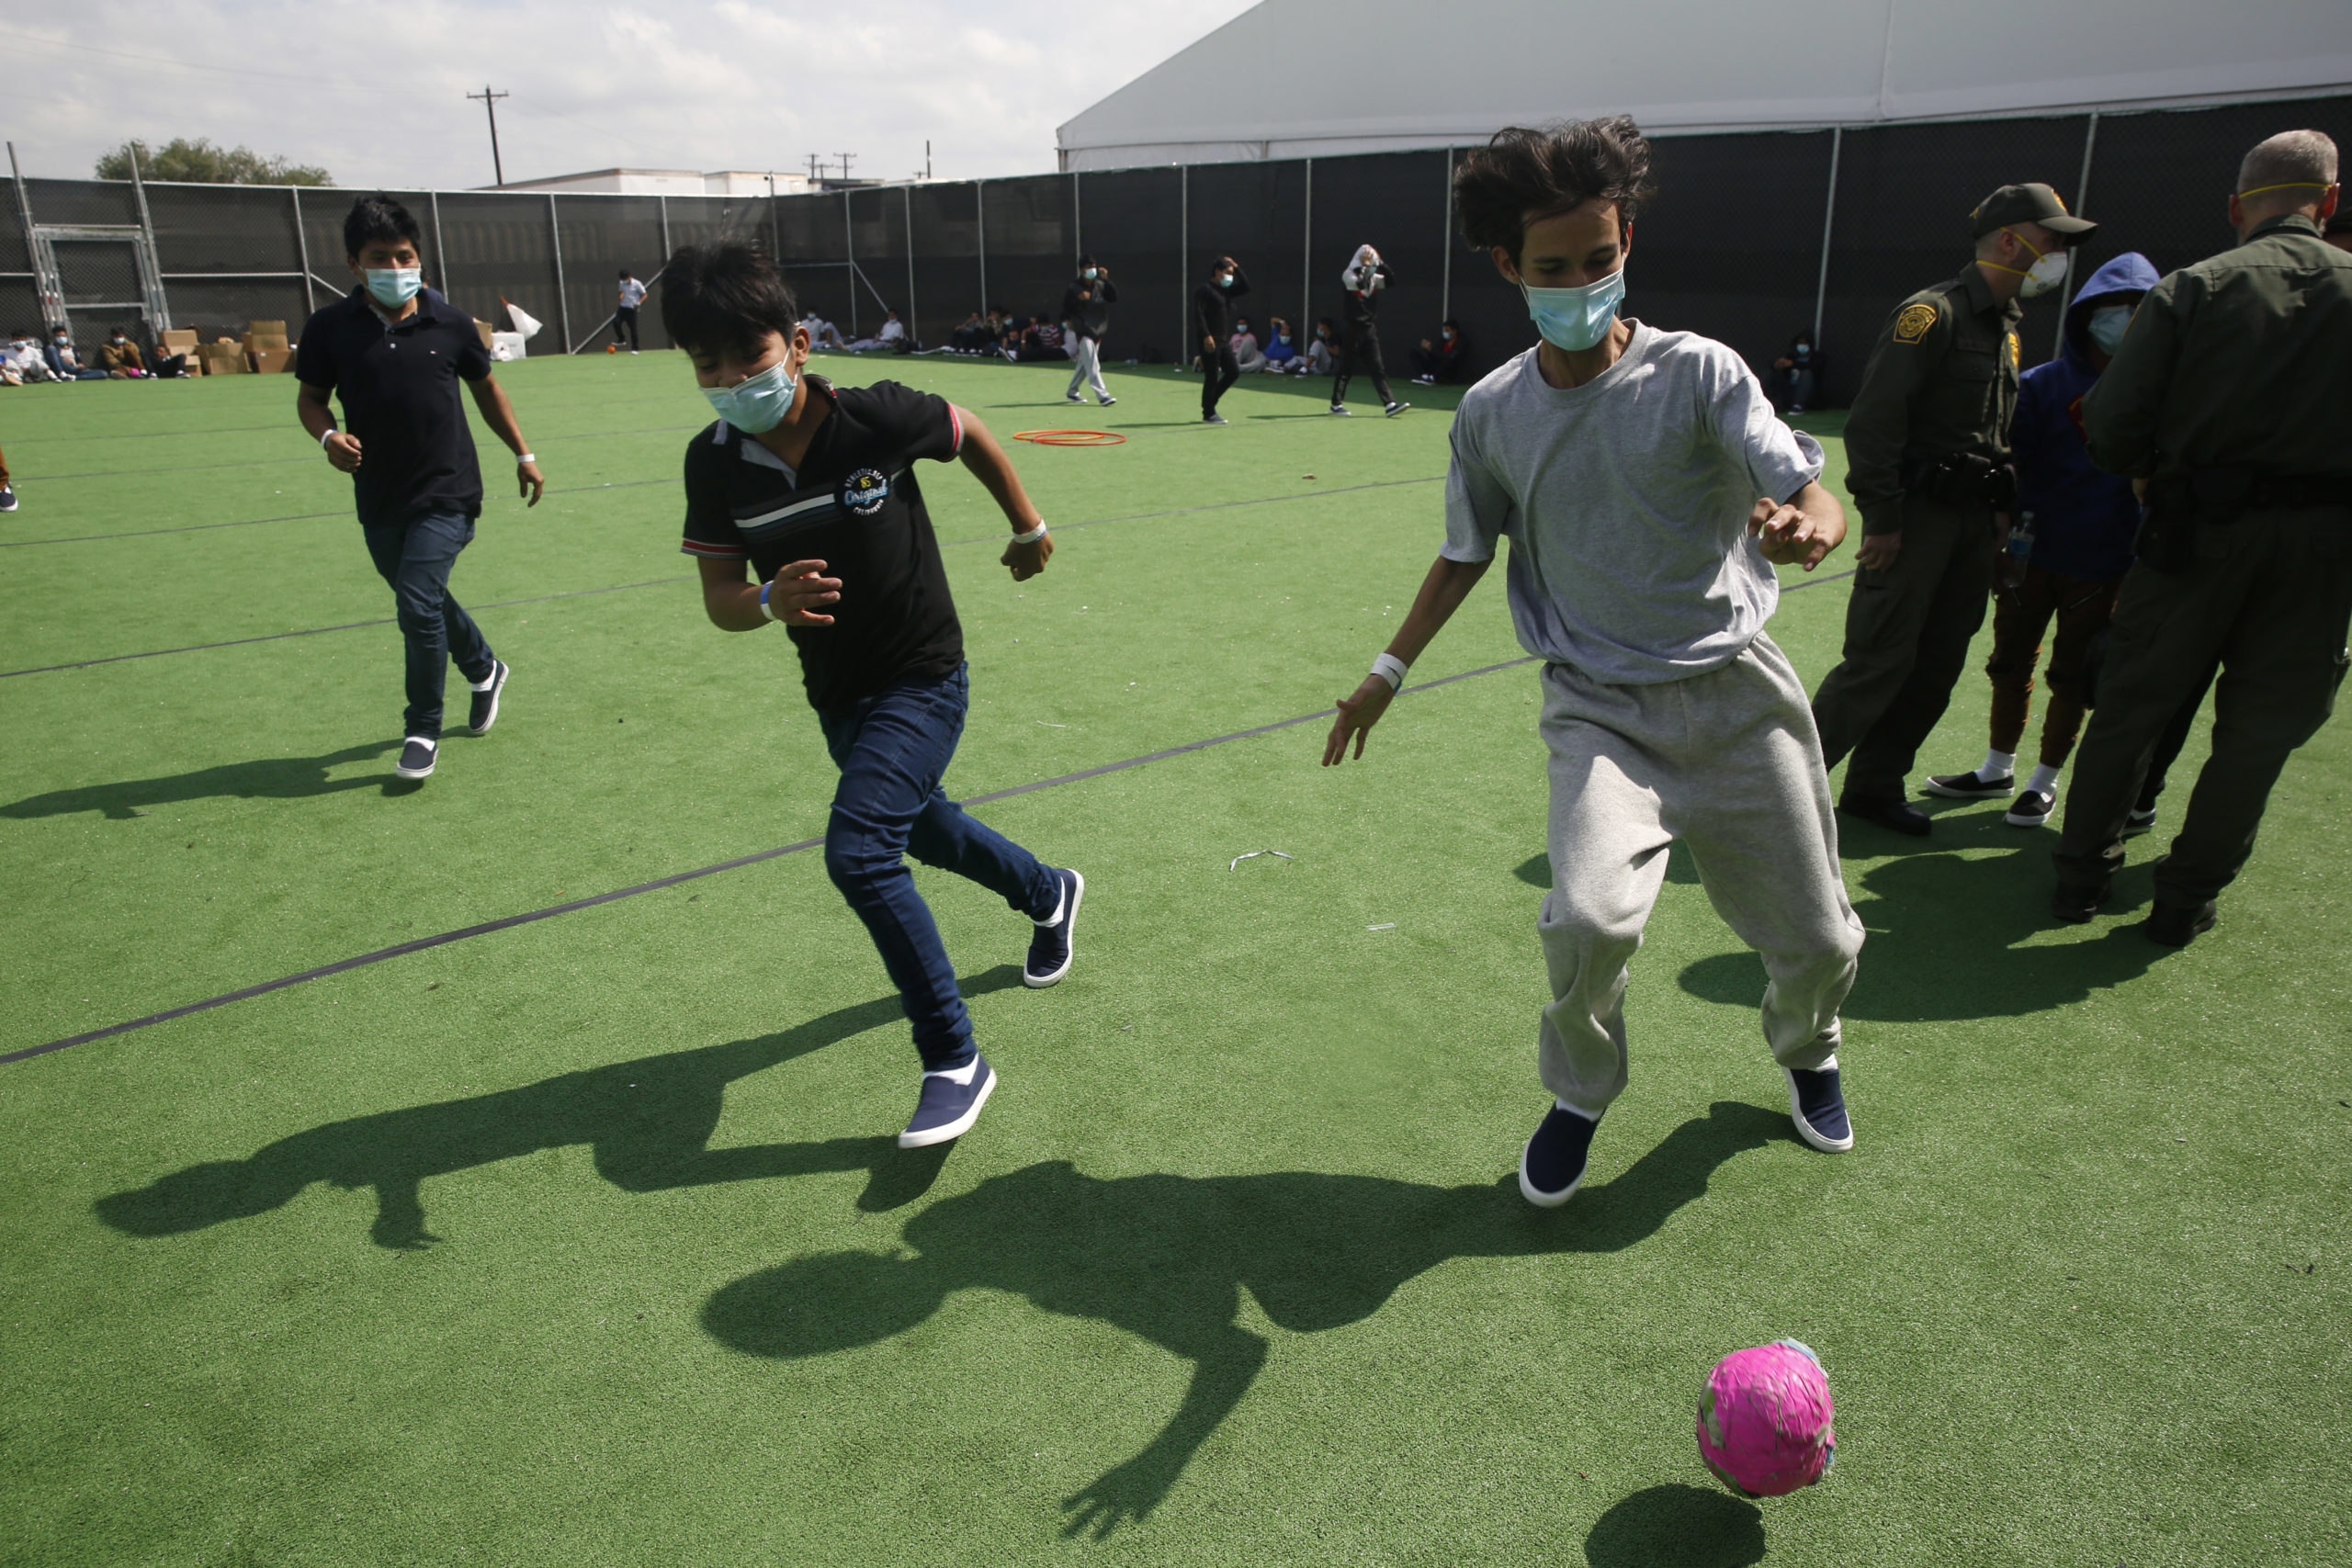 Minors play soccer on a field at the Department of Homeland Security holding facility run by the Customs and Border Patrol (CBP) on March 30, 2021 in Donna, Texas. (Photo by Dario Lopez-Mills - Pool/Getty Images)